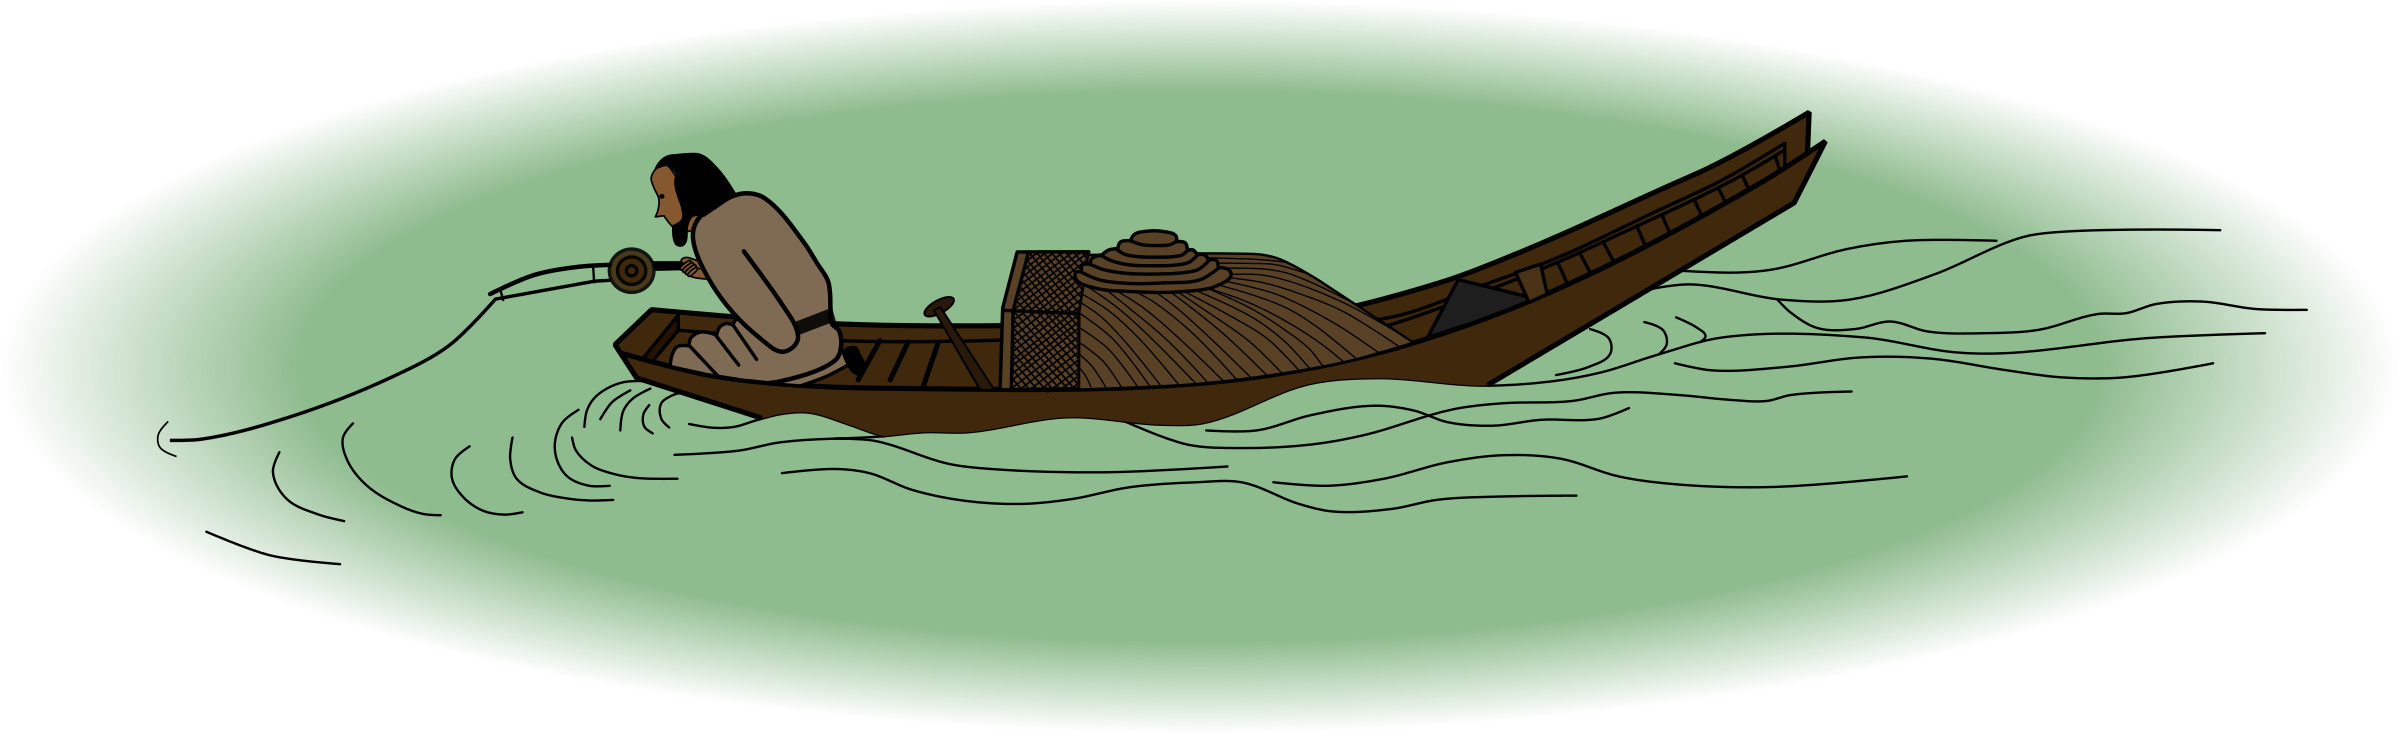 Angler on a Wintry Lake by SeriousTux